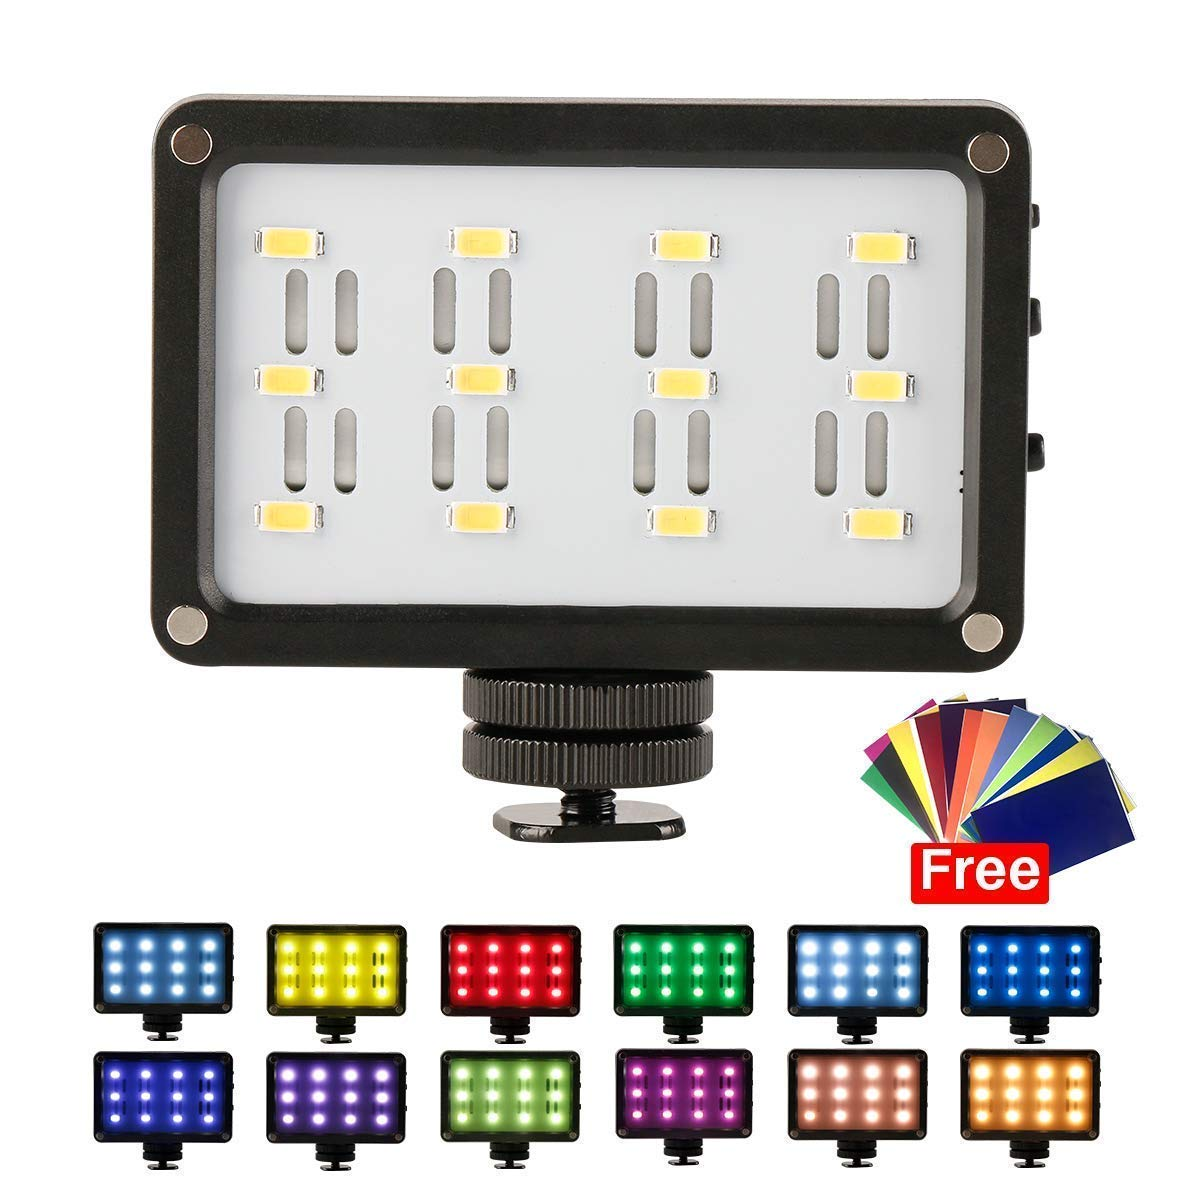 ULAZNI CardLite LED Video Light on Camera - Rechargeable Built-in Battery CRI 95 Photo Light with 12 Color Gels for Canon Nikon DSLR Camcorders Zhiyun Smooth 4 Gimbal Photographyic Lighting